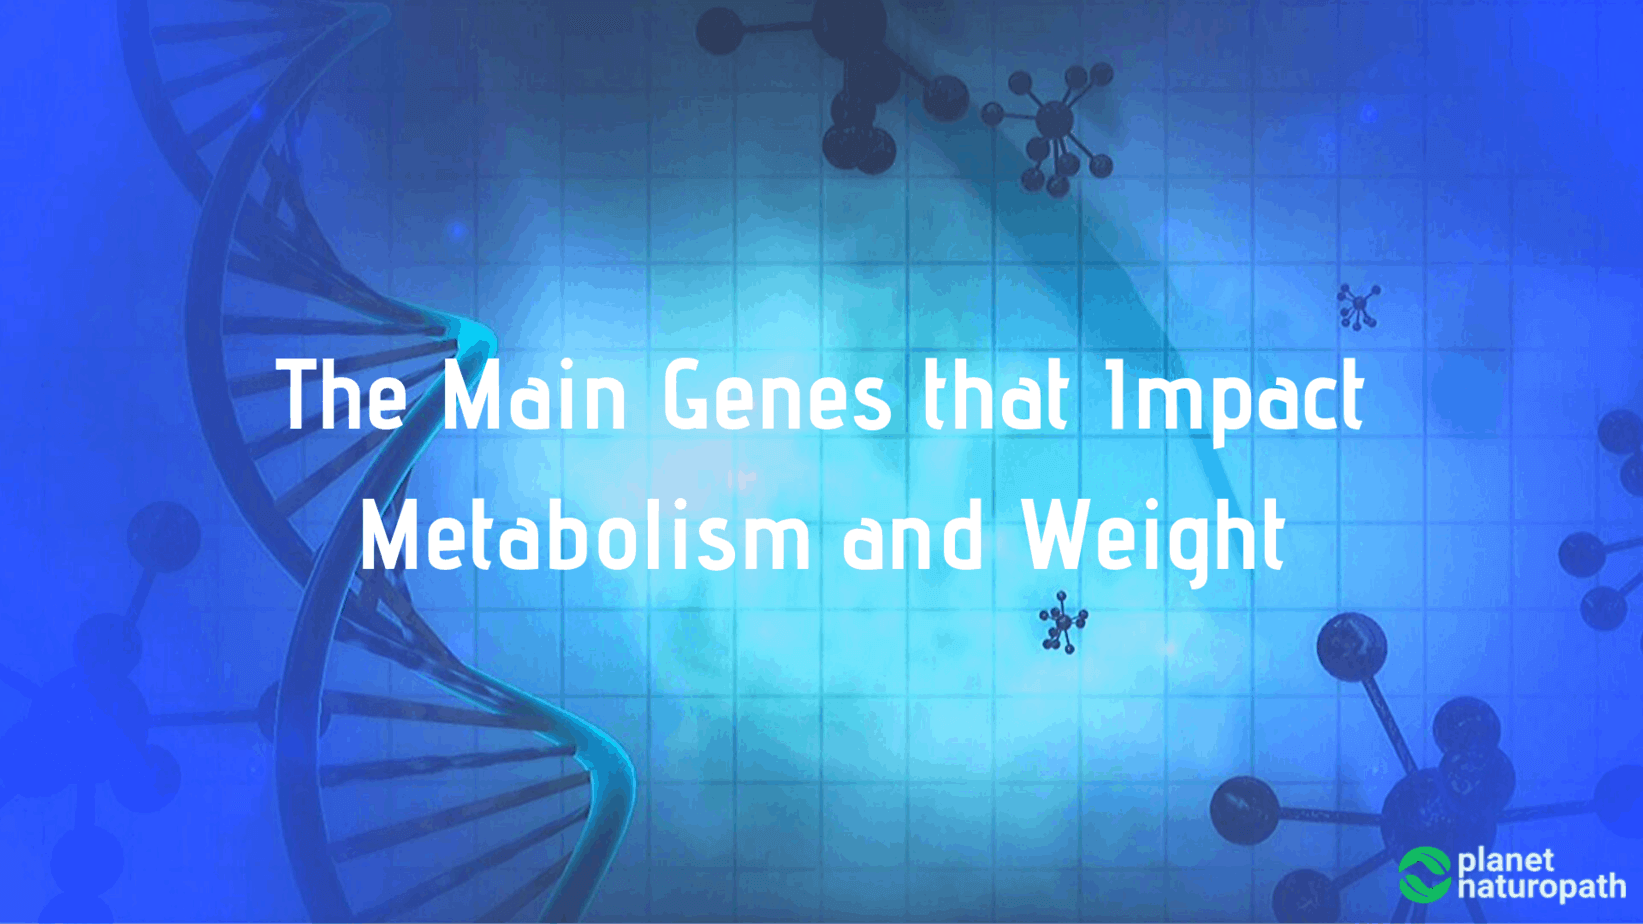 The-Main-Genes-that-Impact-Metabolism-and-Weight